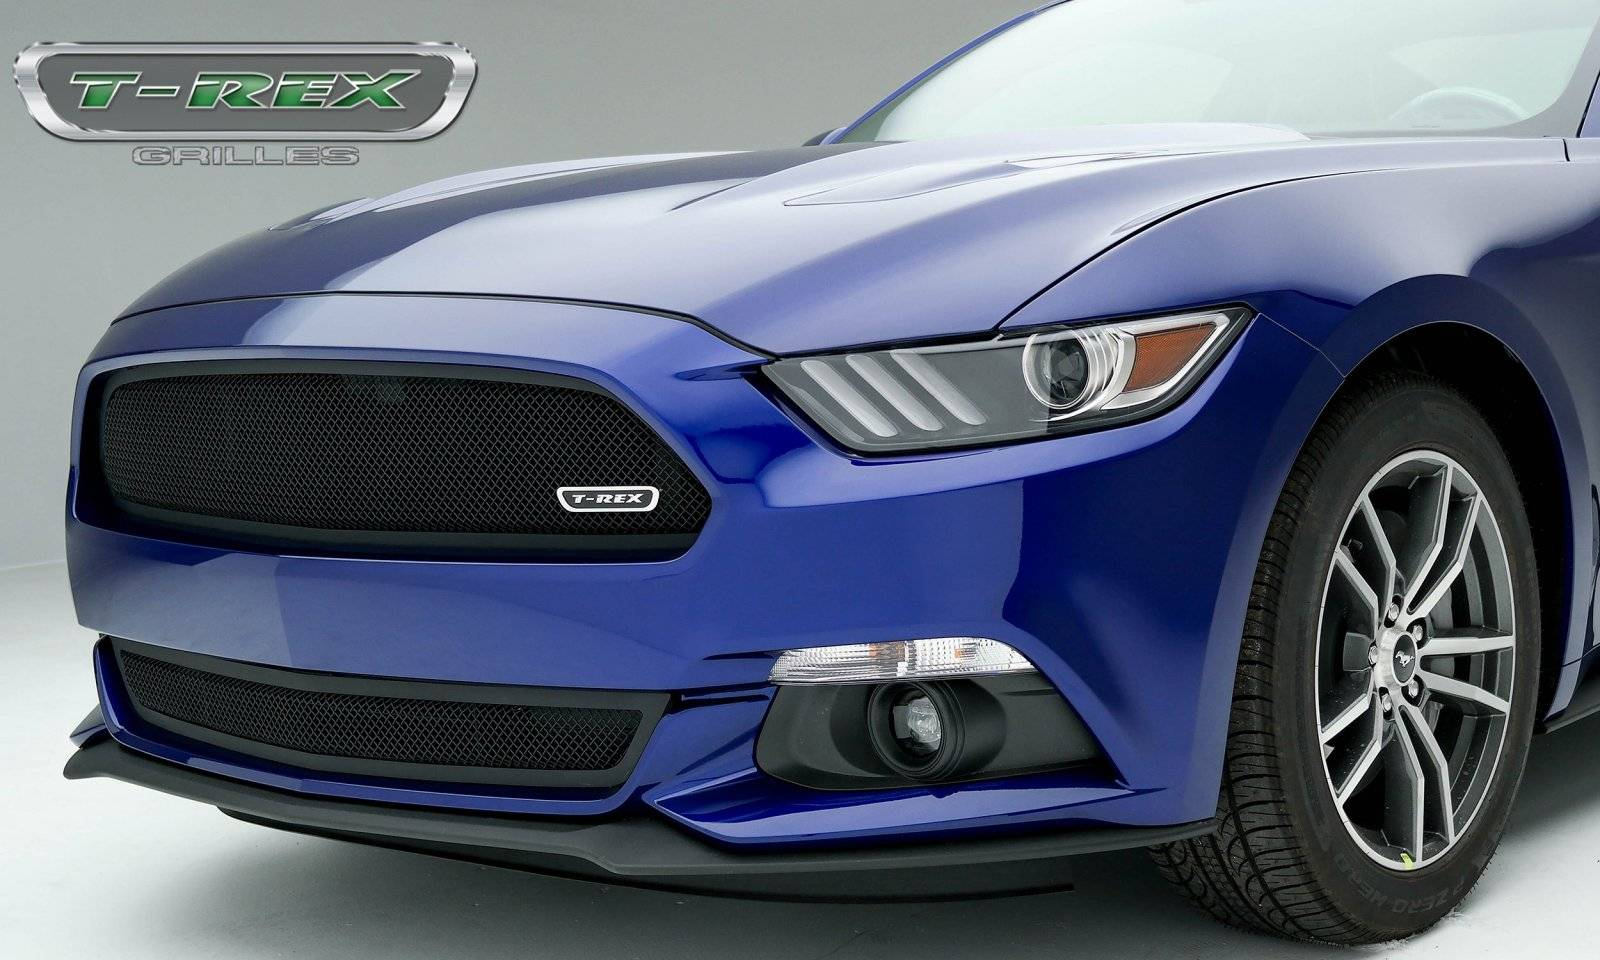 T-REX Ford Mustang GT - Upper Class - Formed Mesh Grille, Bumper, Overlay with Flat Black Powder Coated Finish - Pt # 52530